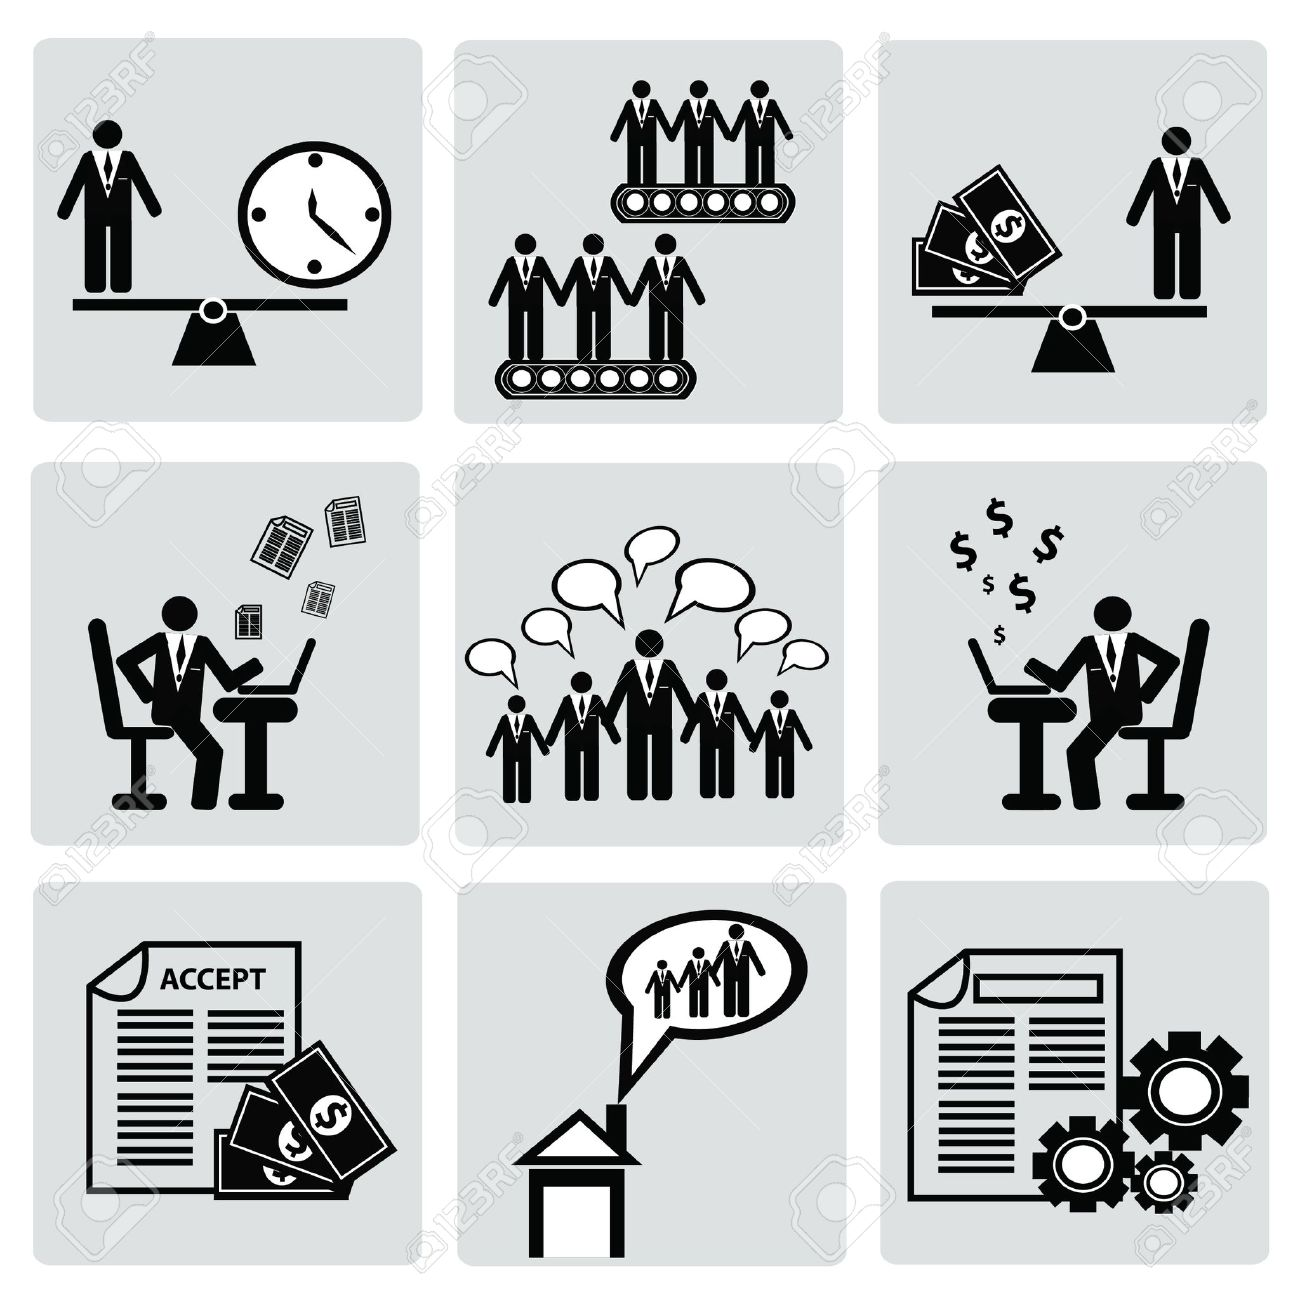 Business management and Human resource,organizati on,icon set,Vector Stock Vector - 18750858